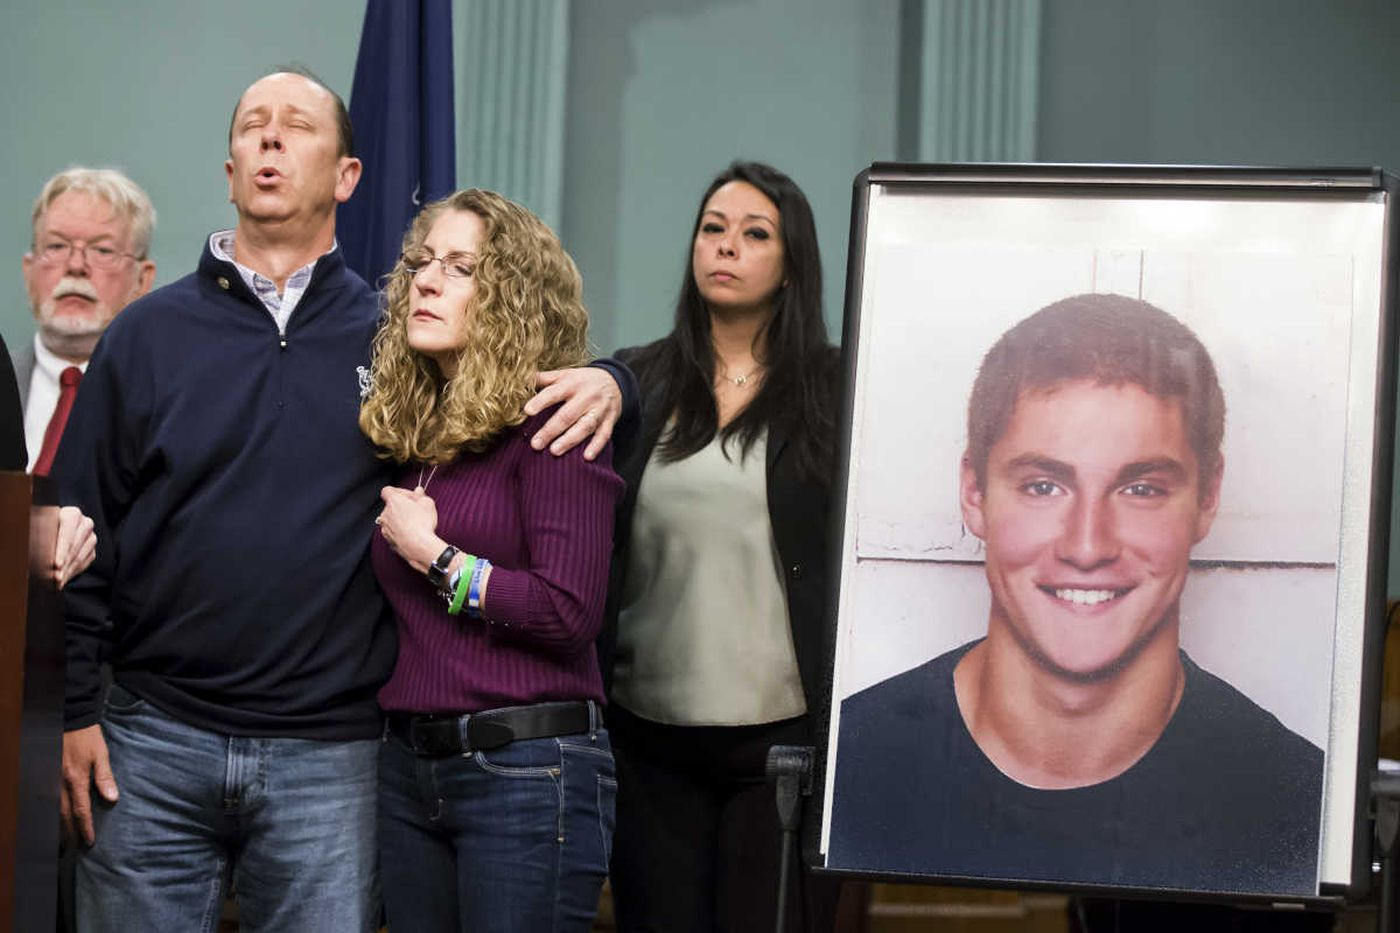 Lesson in human decency might have saved Penn State student's life